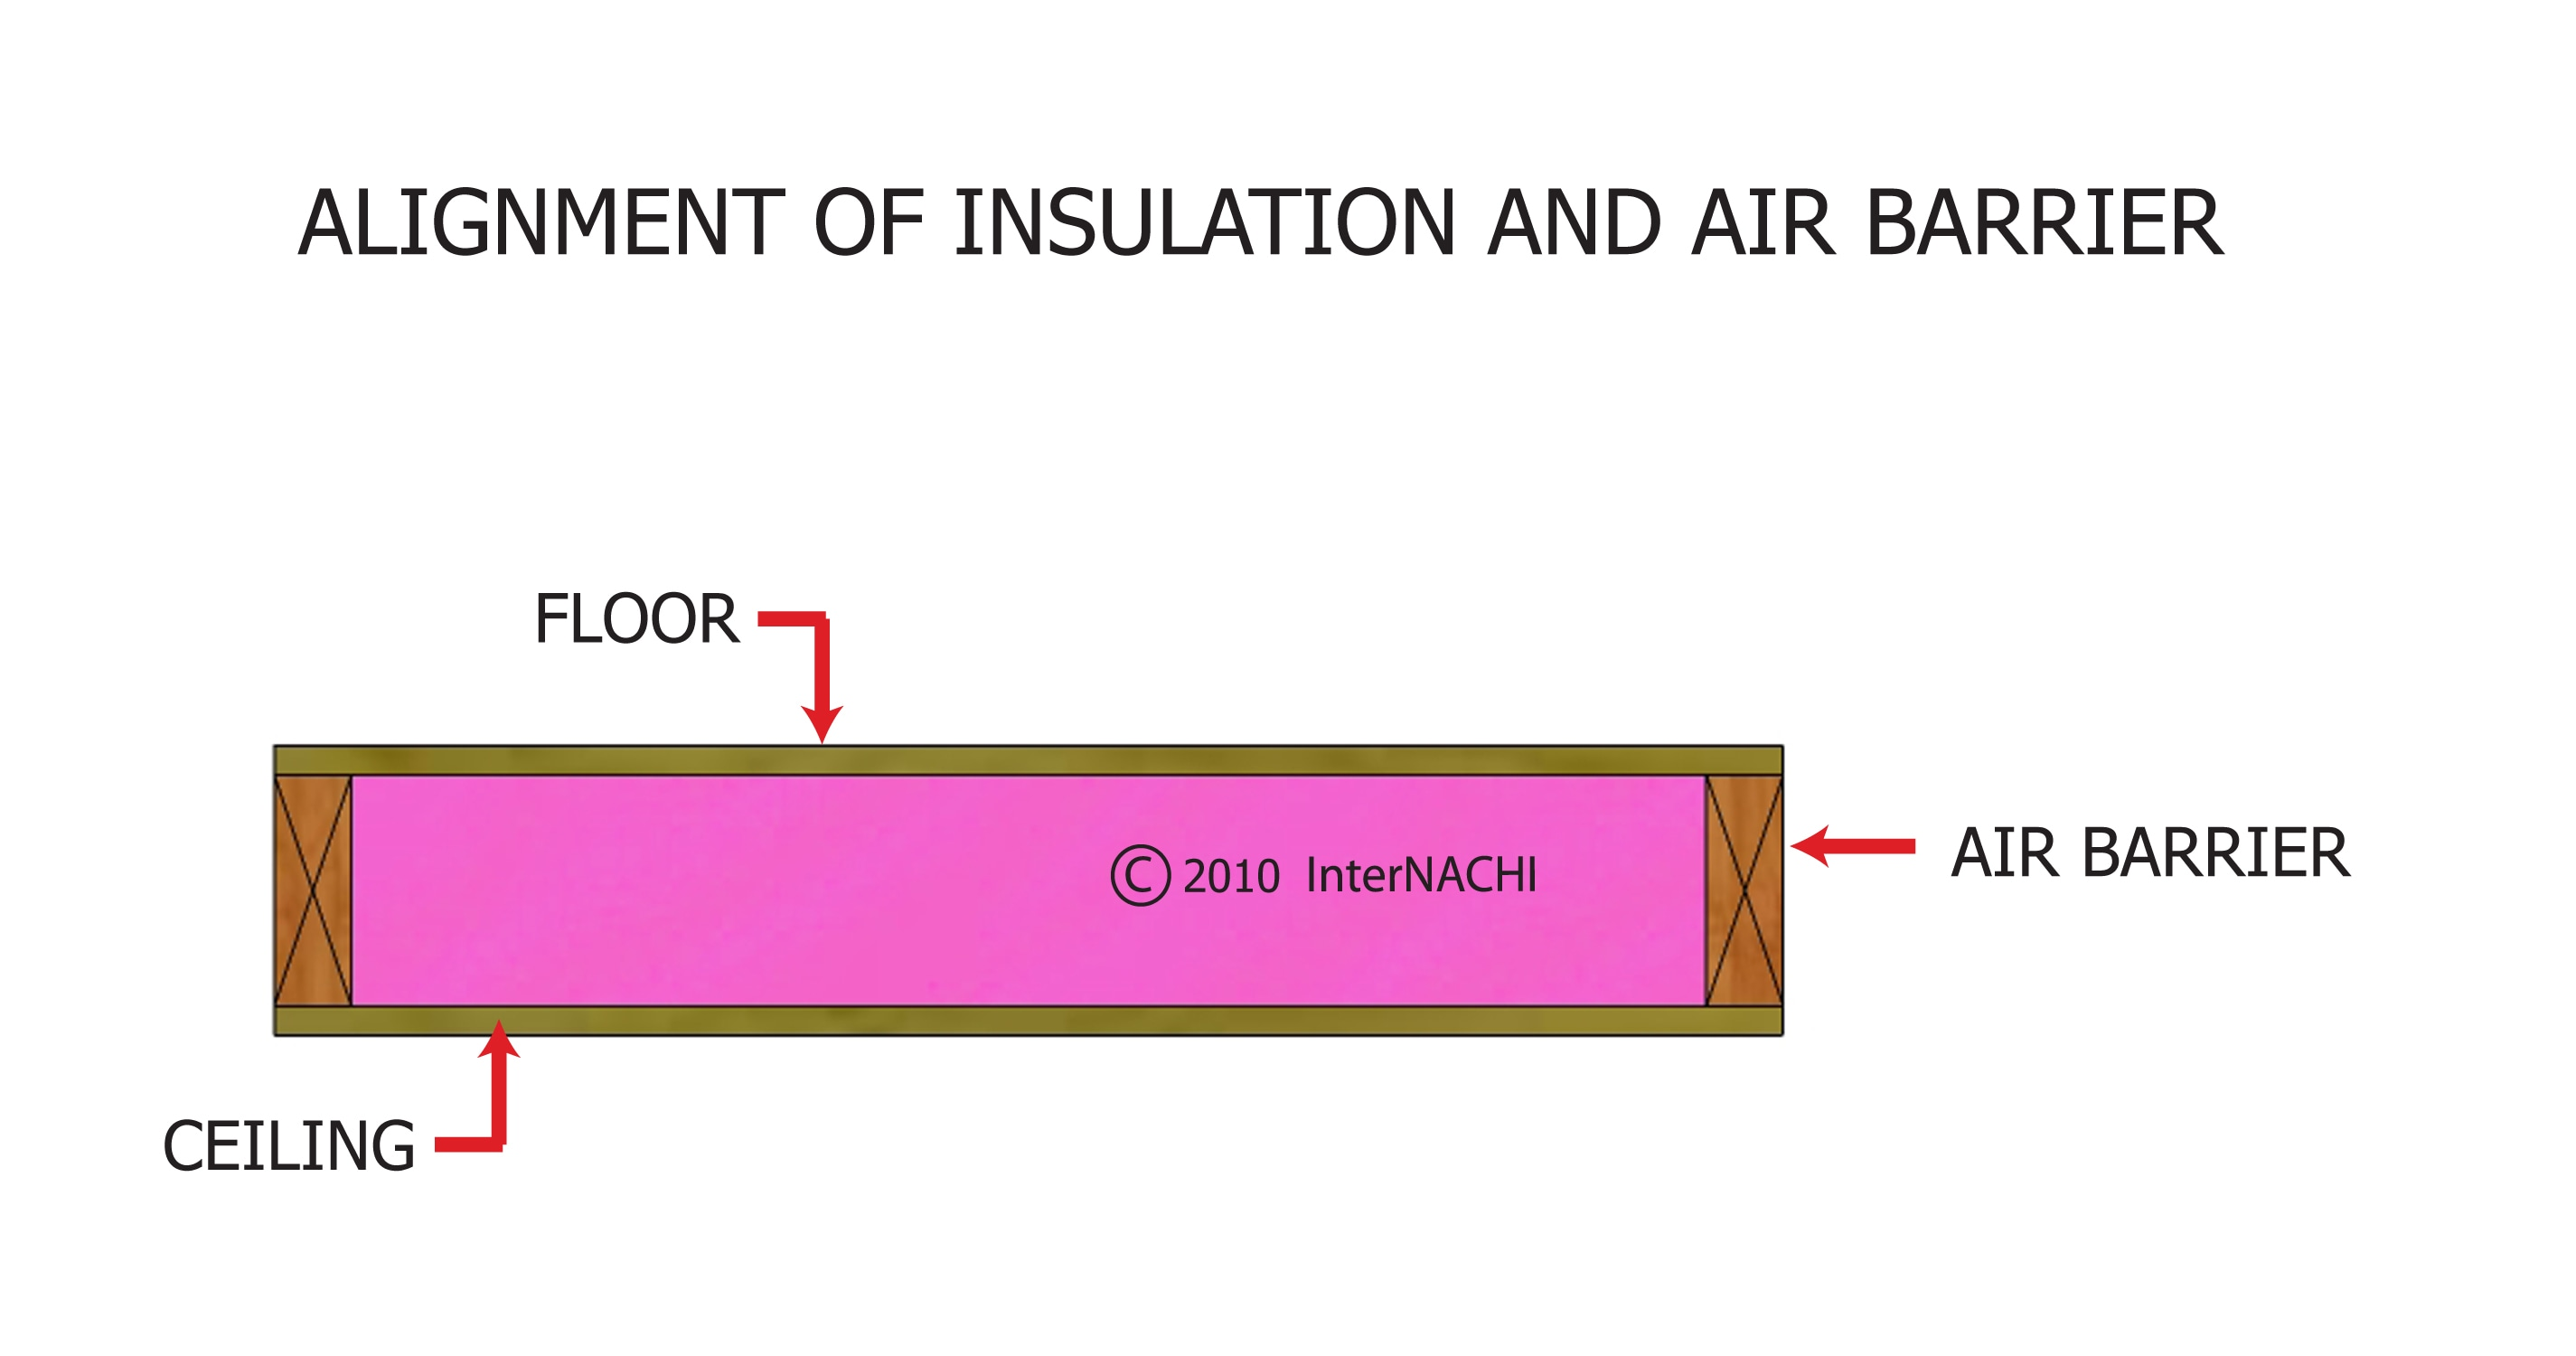 Insulated floor and air barrier.